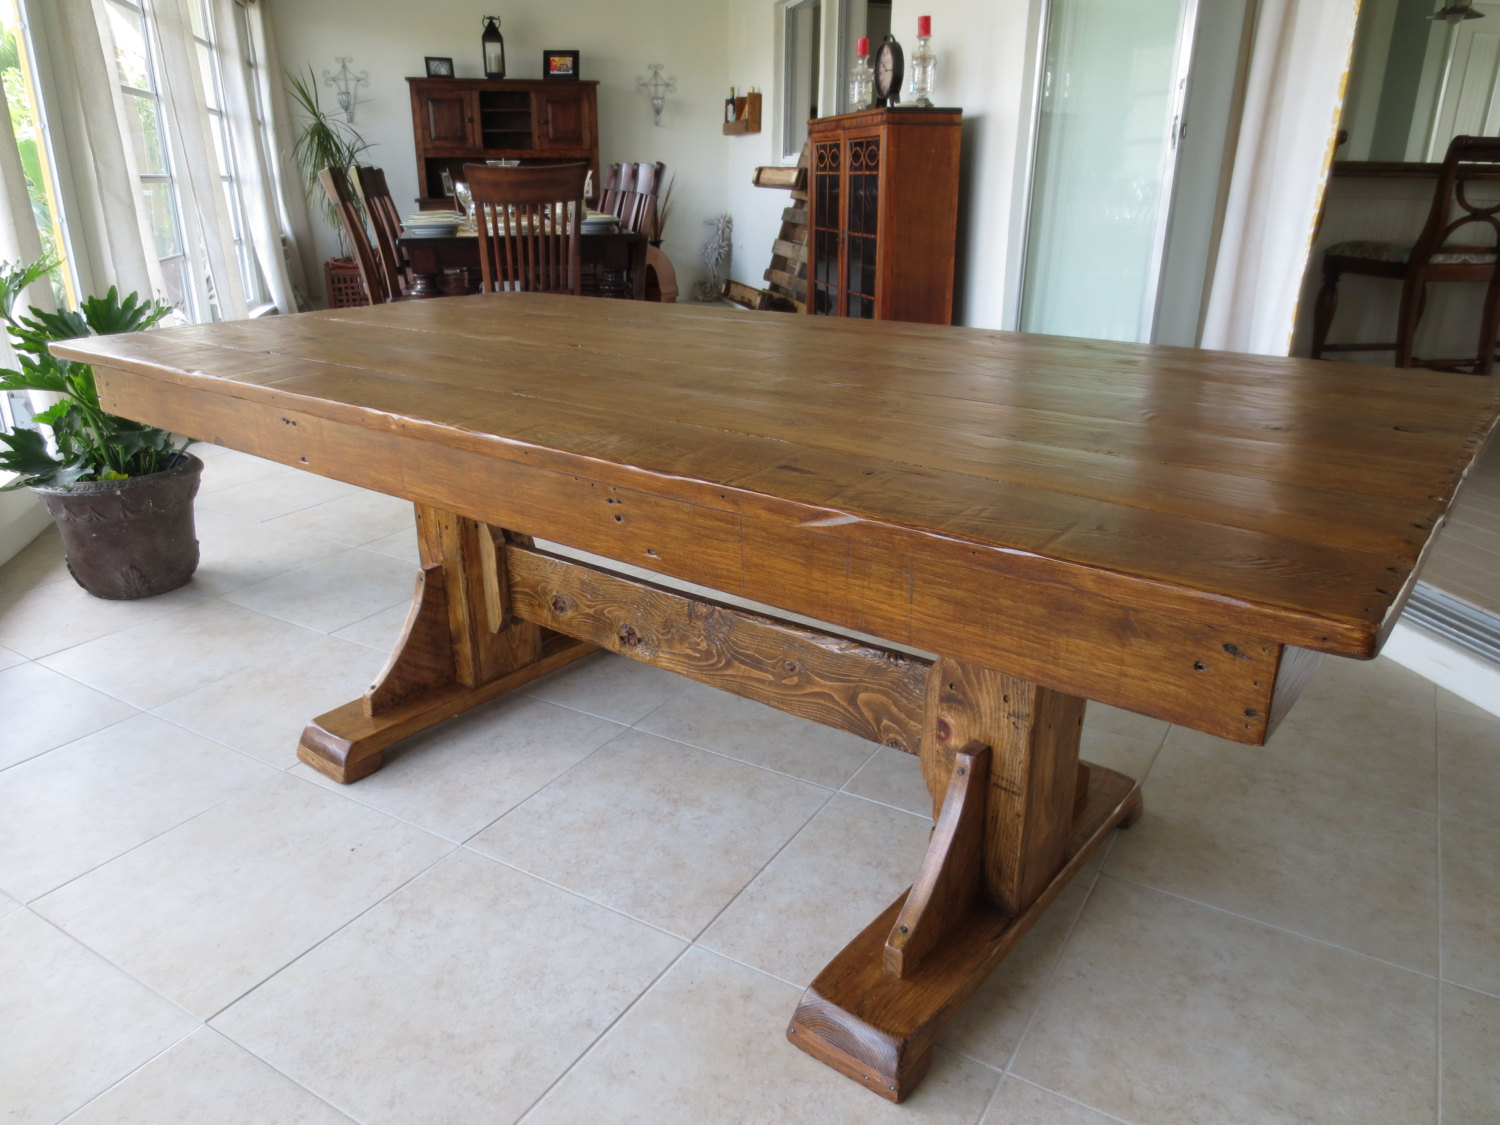 Master Dining Table Reclaimed Wood Dining Room Tables Home Interior Ideas reclaimed wood dining room table